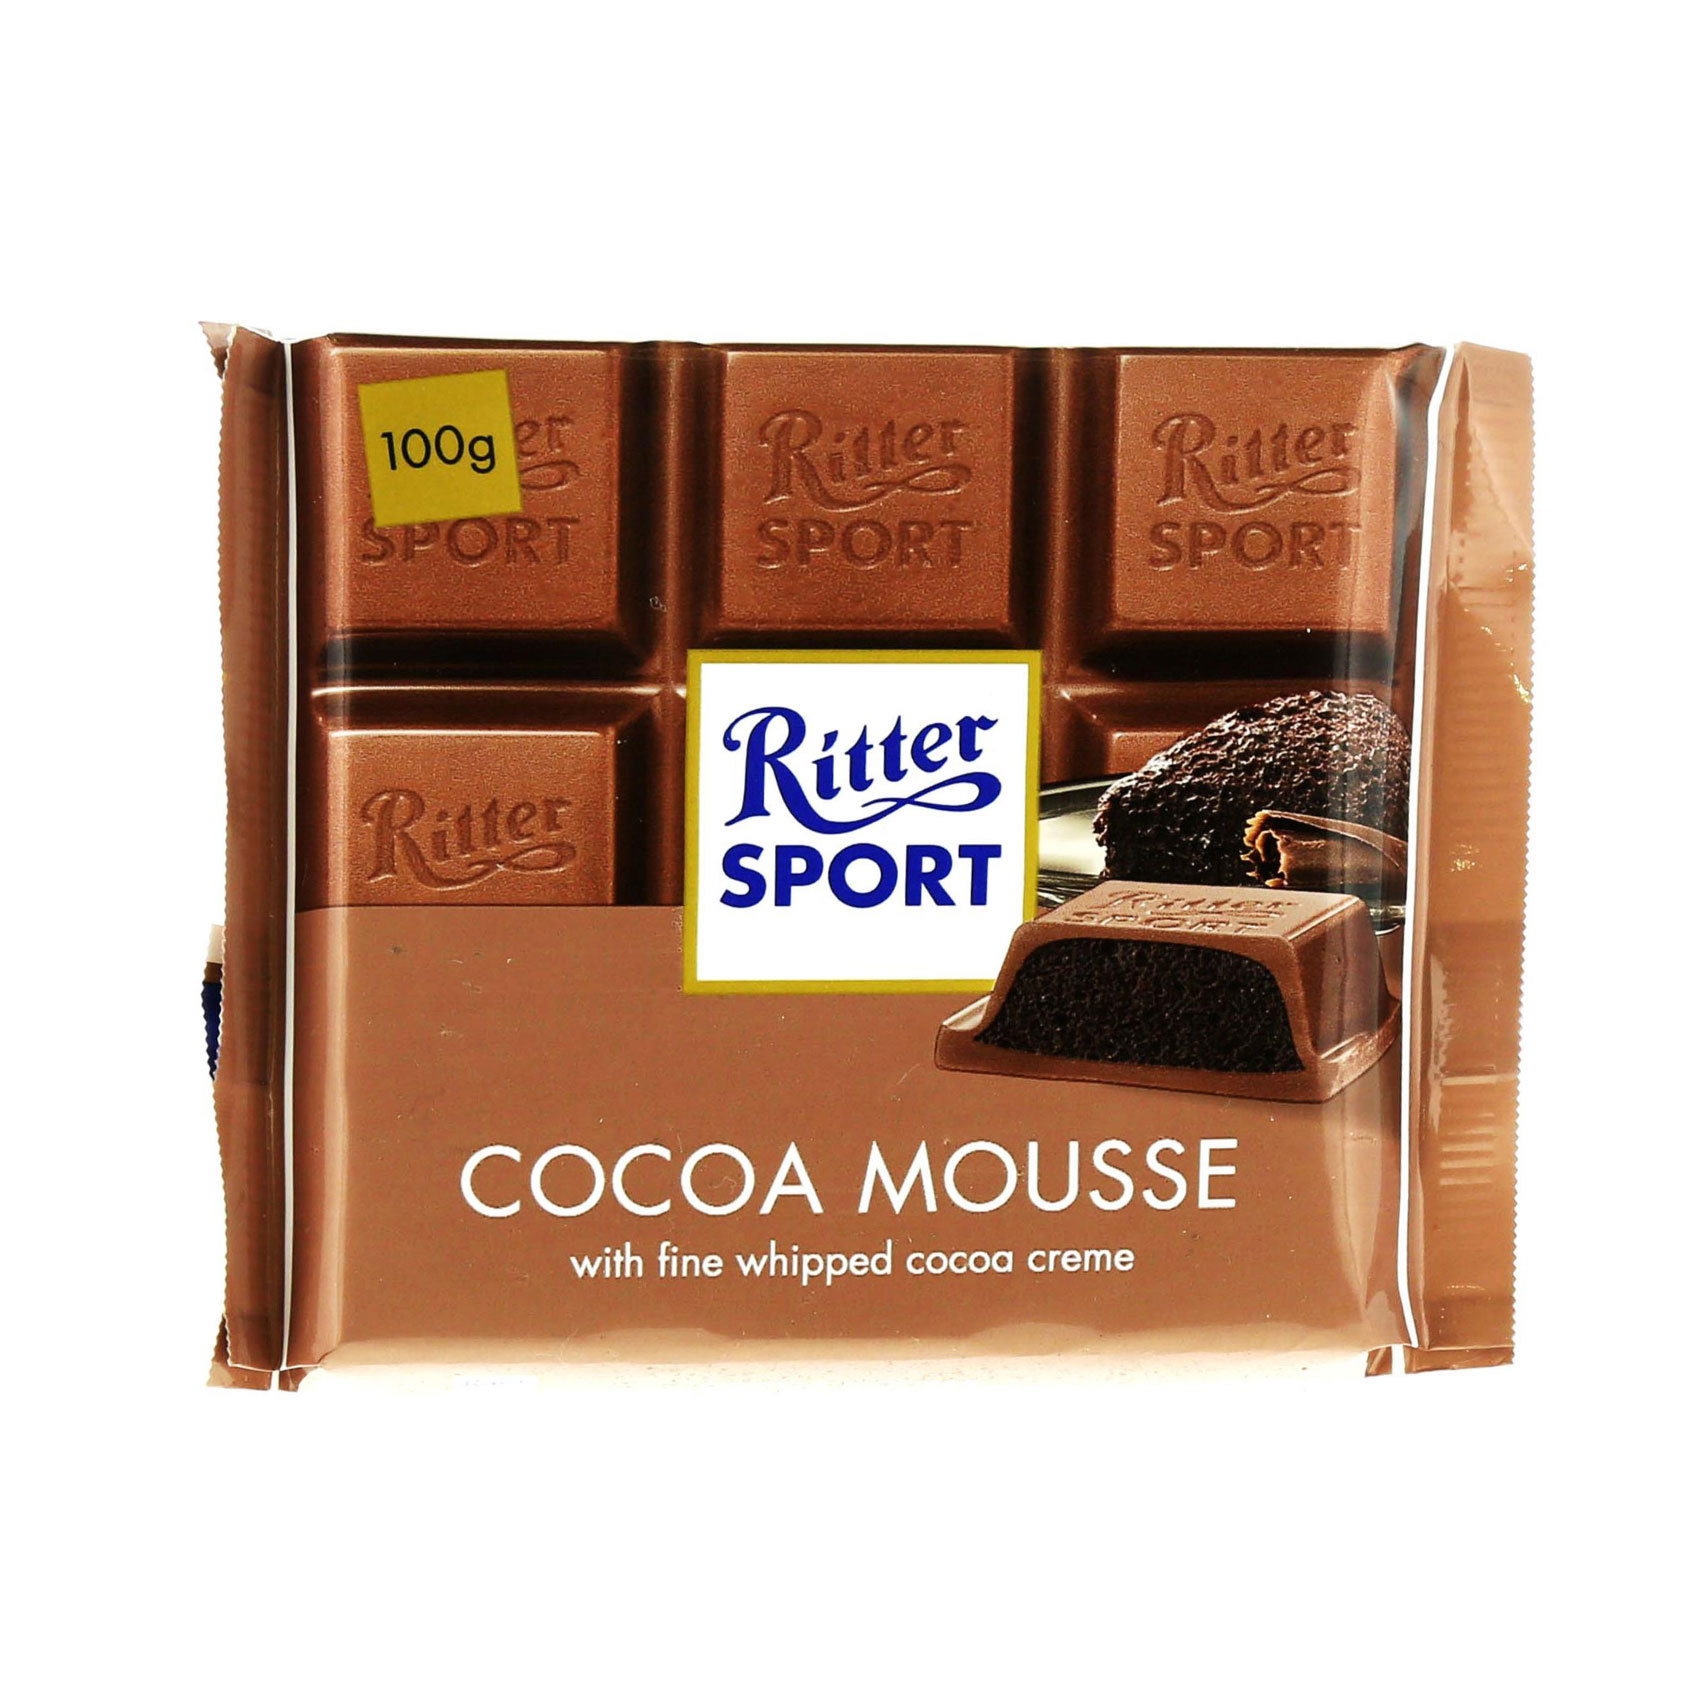 RITTER SPORT COCOA MOUSSE 100GM